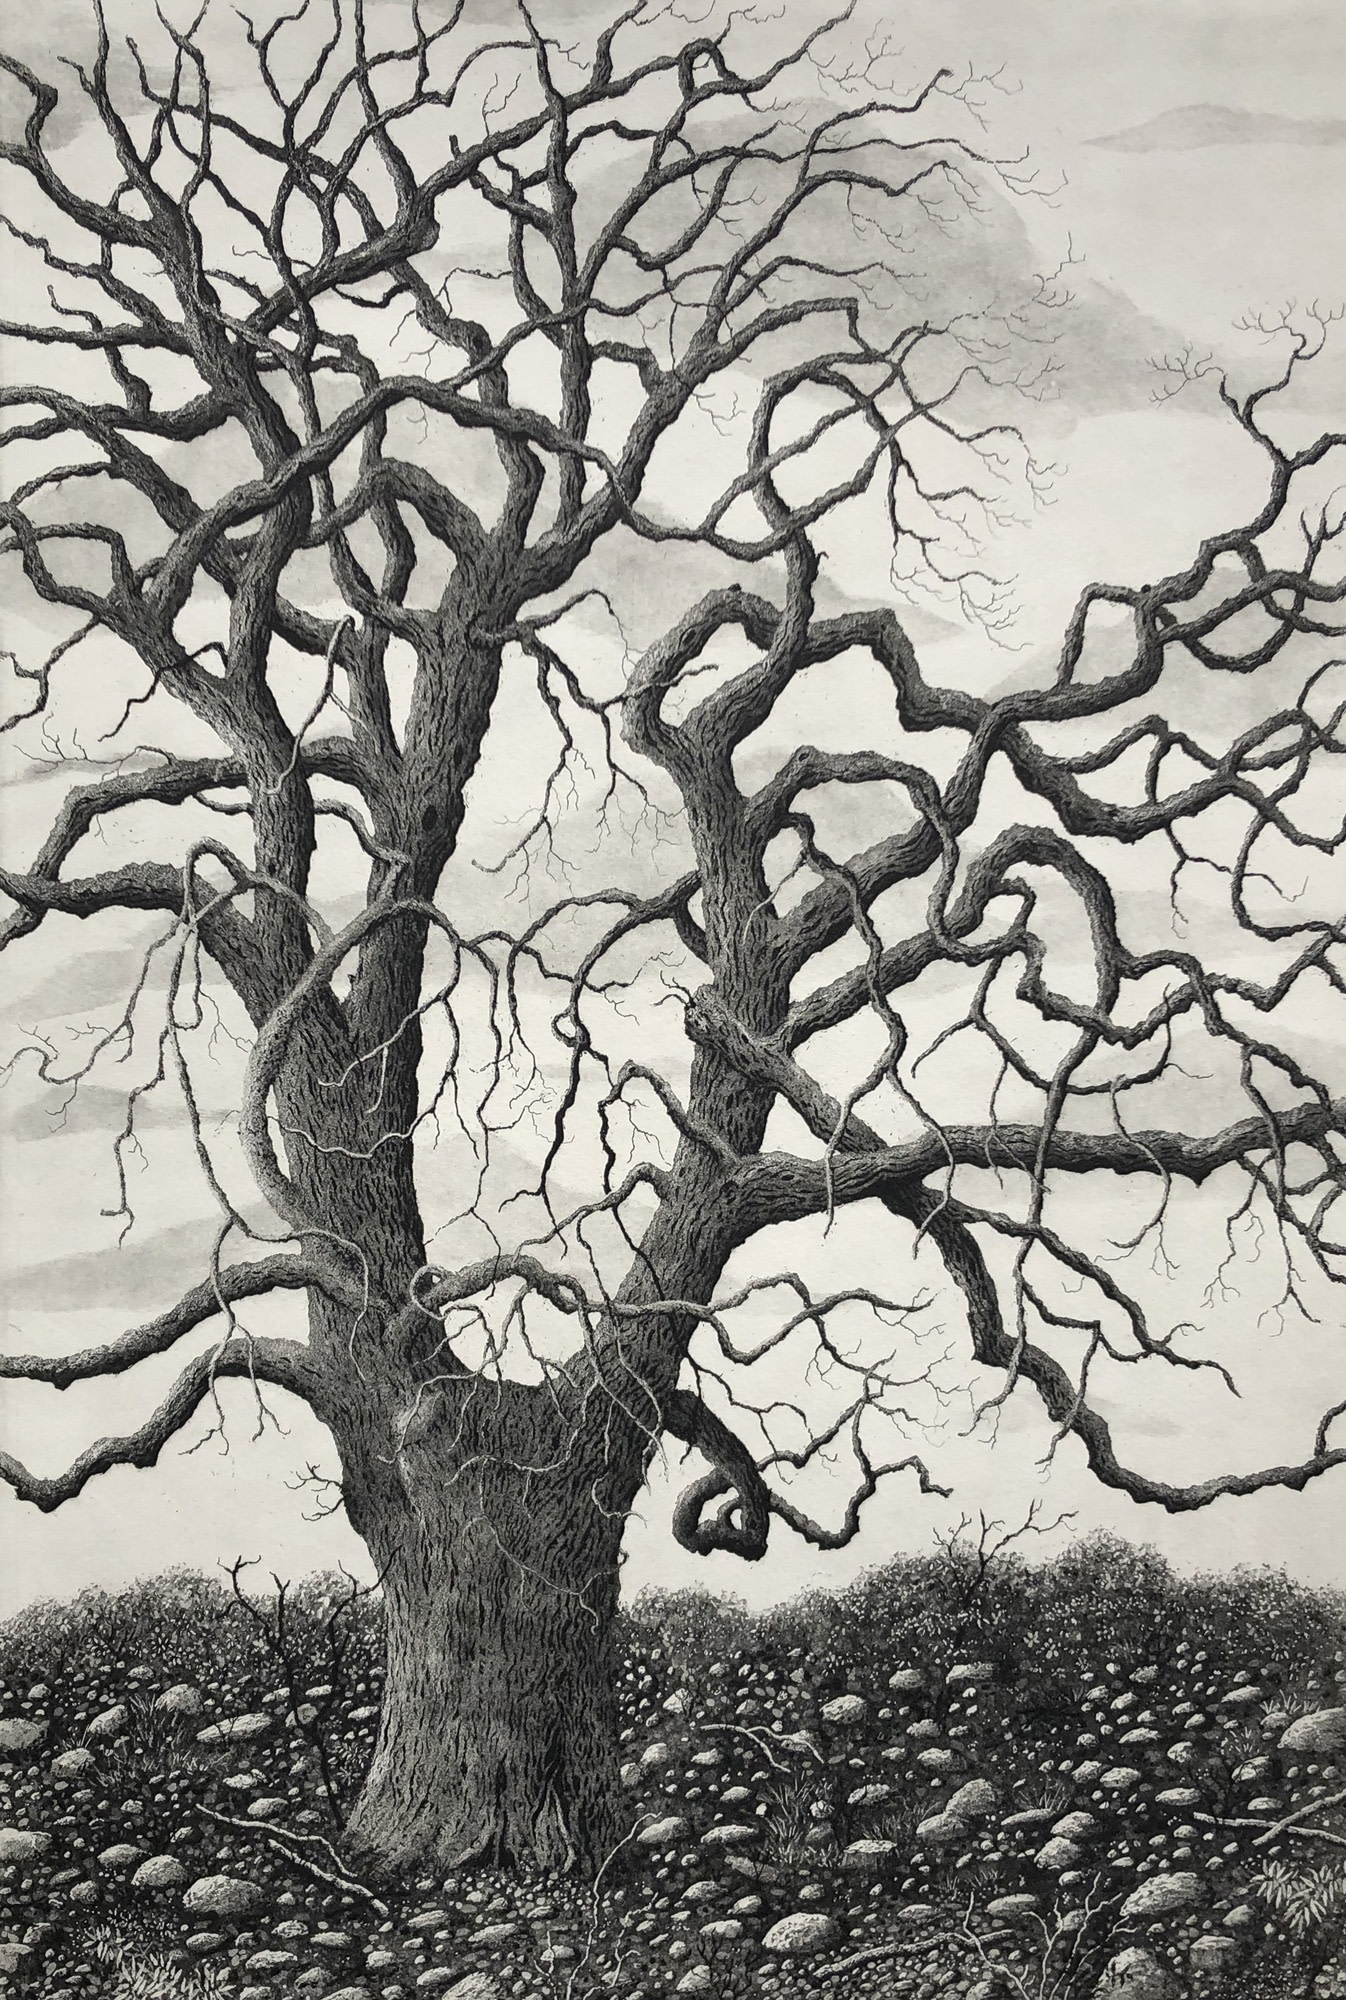 "<span class=""link fancybox-details-link""><a href=""/exhibitions/17/works/image_standalone784/"">View Detail Page</a></span><p><strong>Stephanie Jane Rampton</strong></p><p>Tree of Grace</p><p>etching and aquatint, ed of 10</p><p>76 x 58cm</p><p>£544 framed</p><p>£408 unframed</p>"